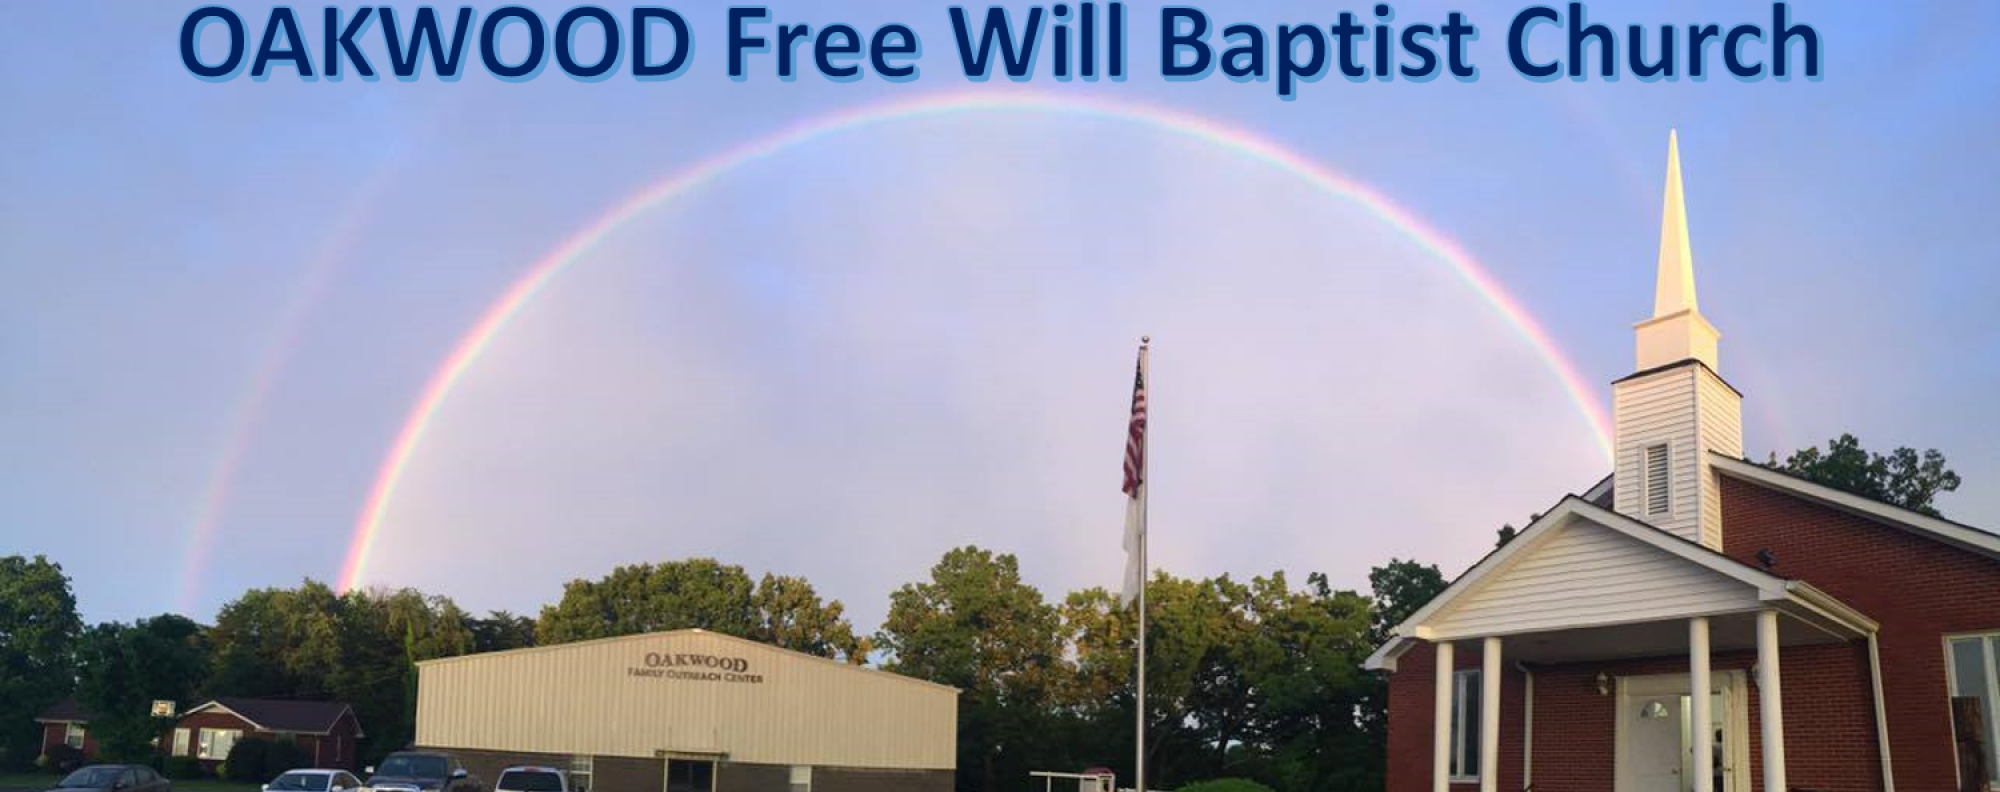 Oakwood Free Will Baptist Church